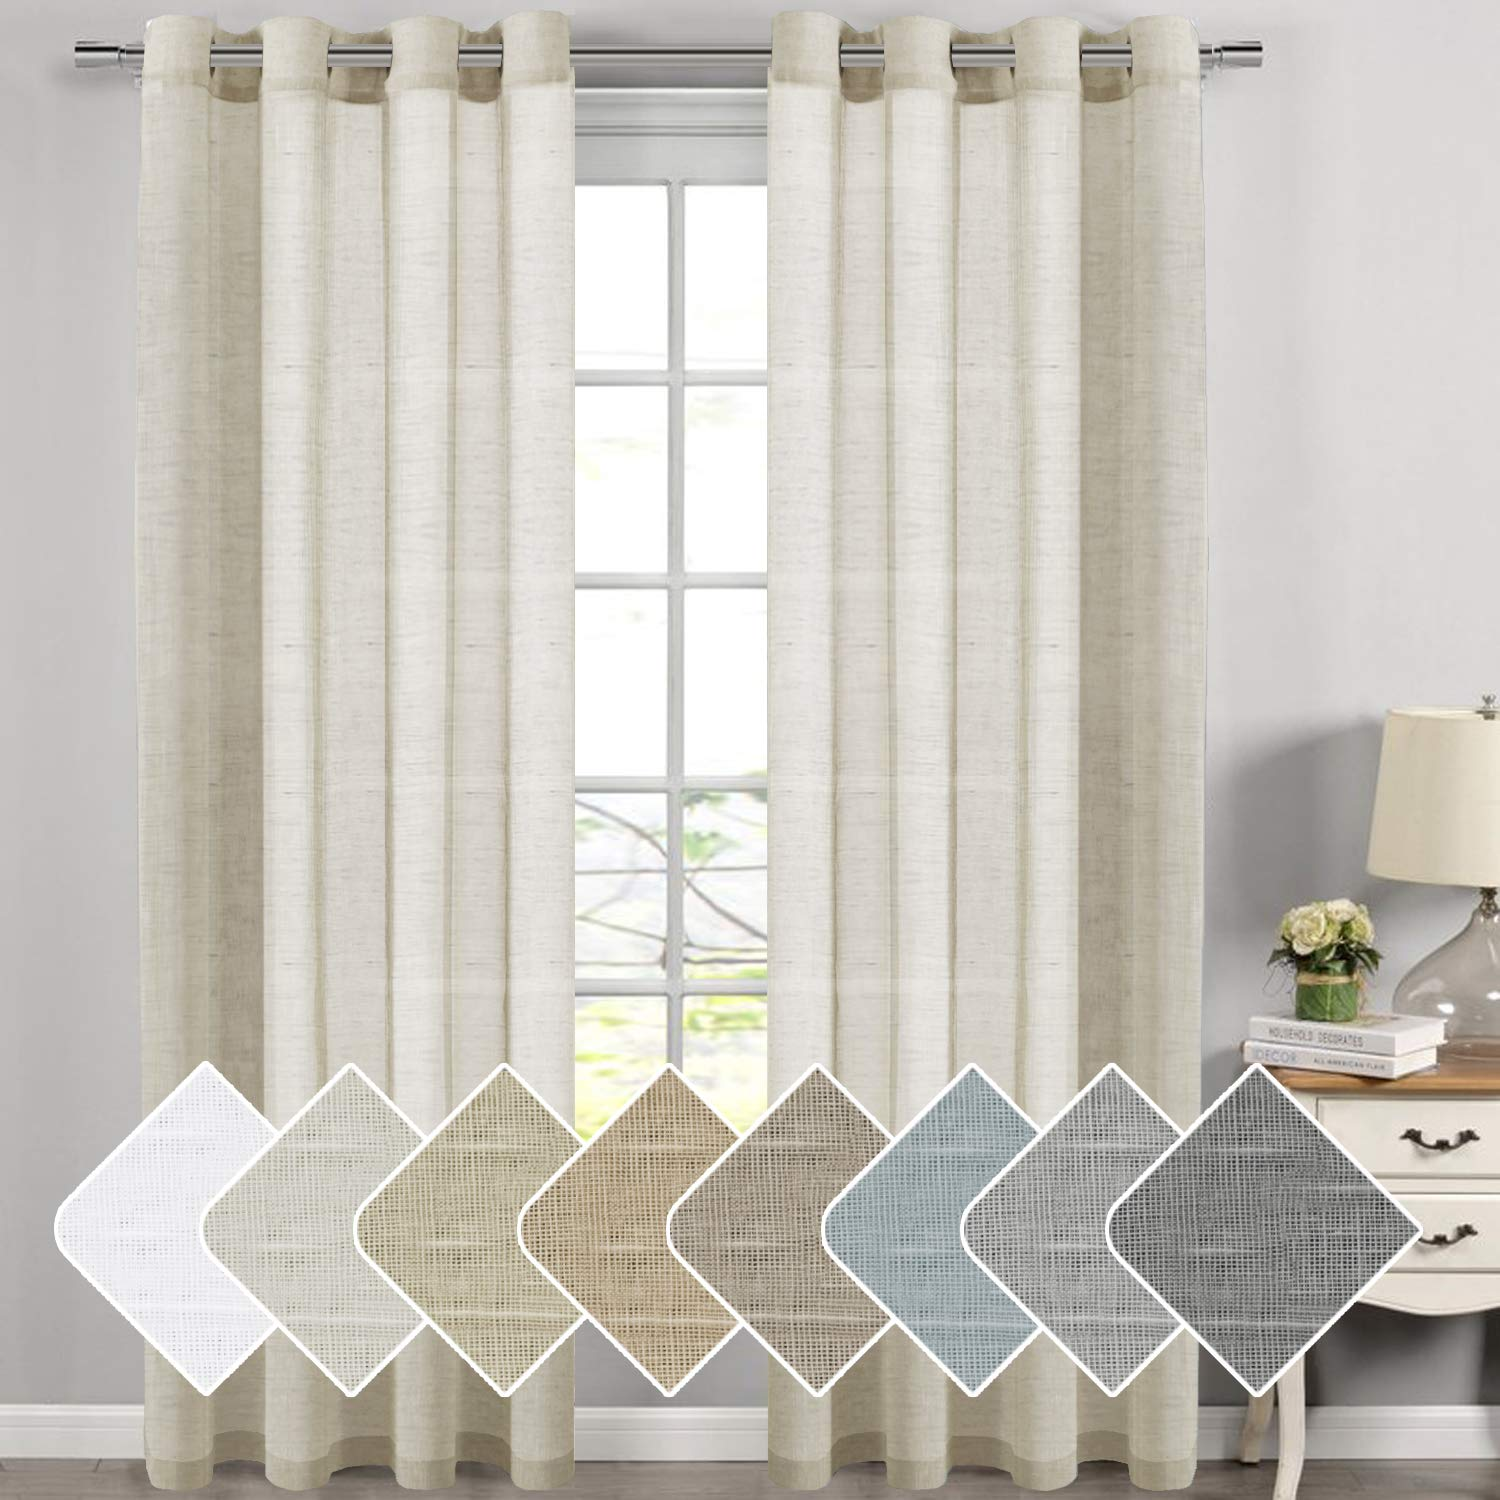 Living Room Curtains Breathable and Airy Semi - Sheers Natural Linen Blended Curtains Draperies Extra Long 108 Inches Long, Premium Soft Durable Nickel Grommet Curtain Panels Pair, Natural